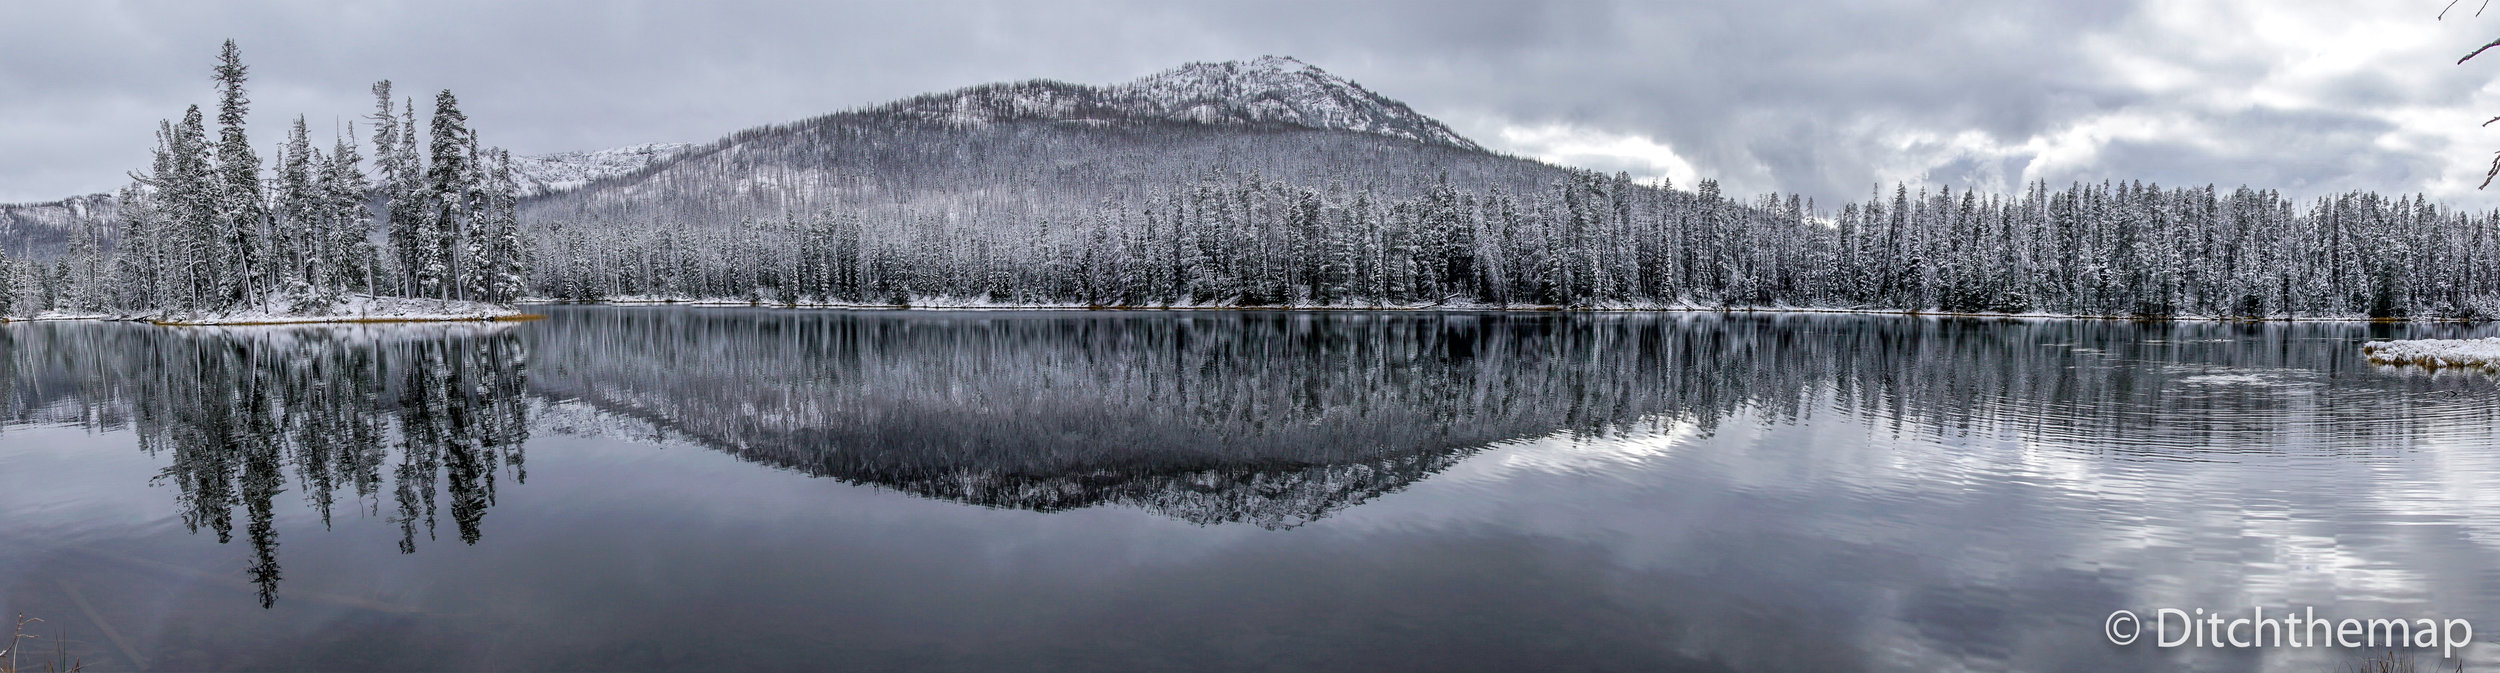 Light snow covered strees and mountain with reflection on lake